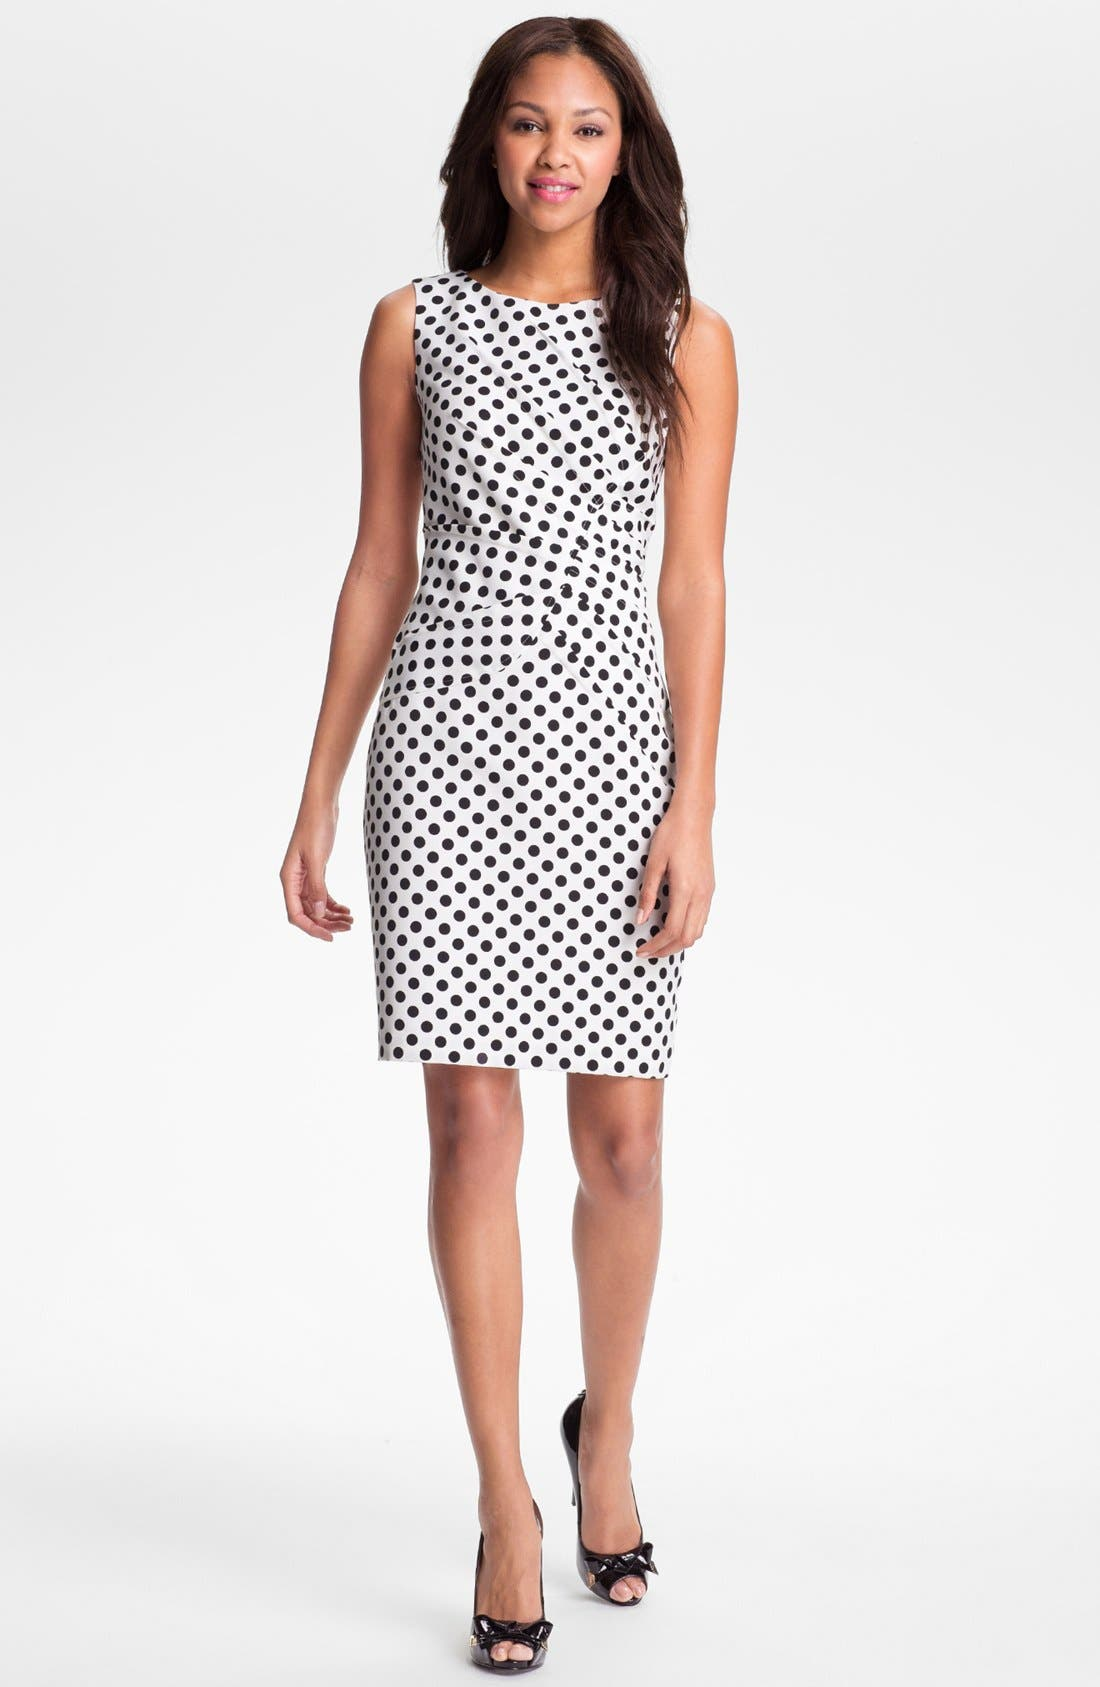 Main Image - Adrianna Papell Pleated Polka Dot Sheath Dress (Regular & Petite)